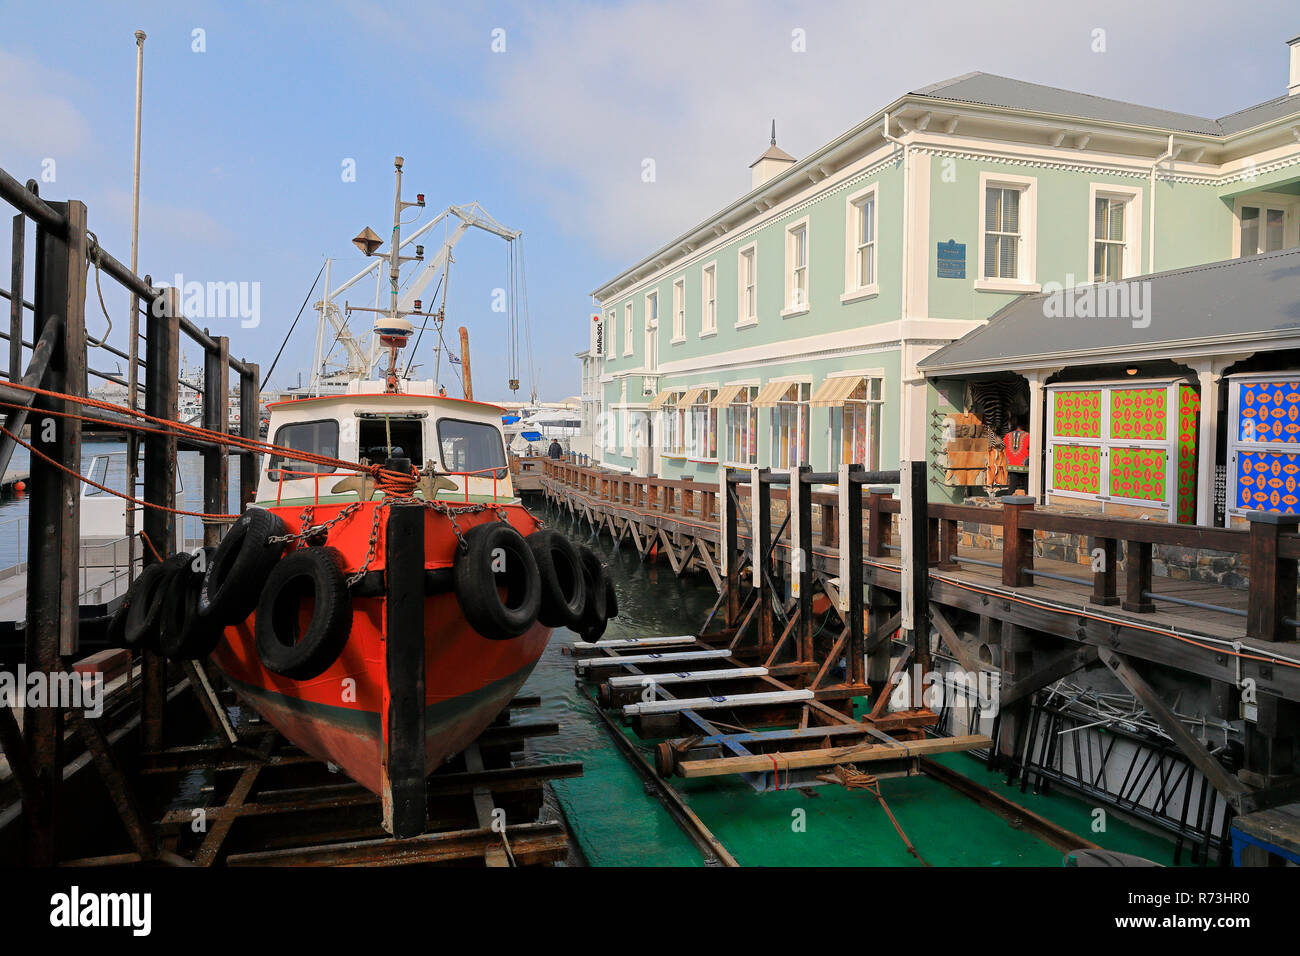 Dry dock, fishing boat, harbour, Victoria and Alfred Waterfront, Cape Town, South Africa, Africa - Stock Image